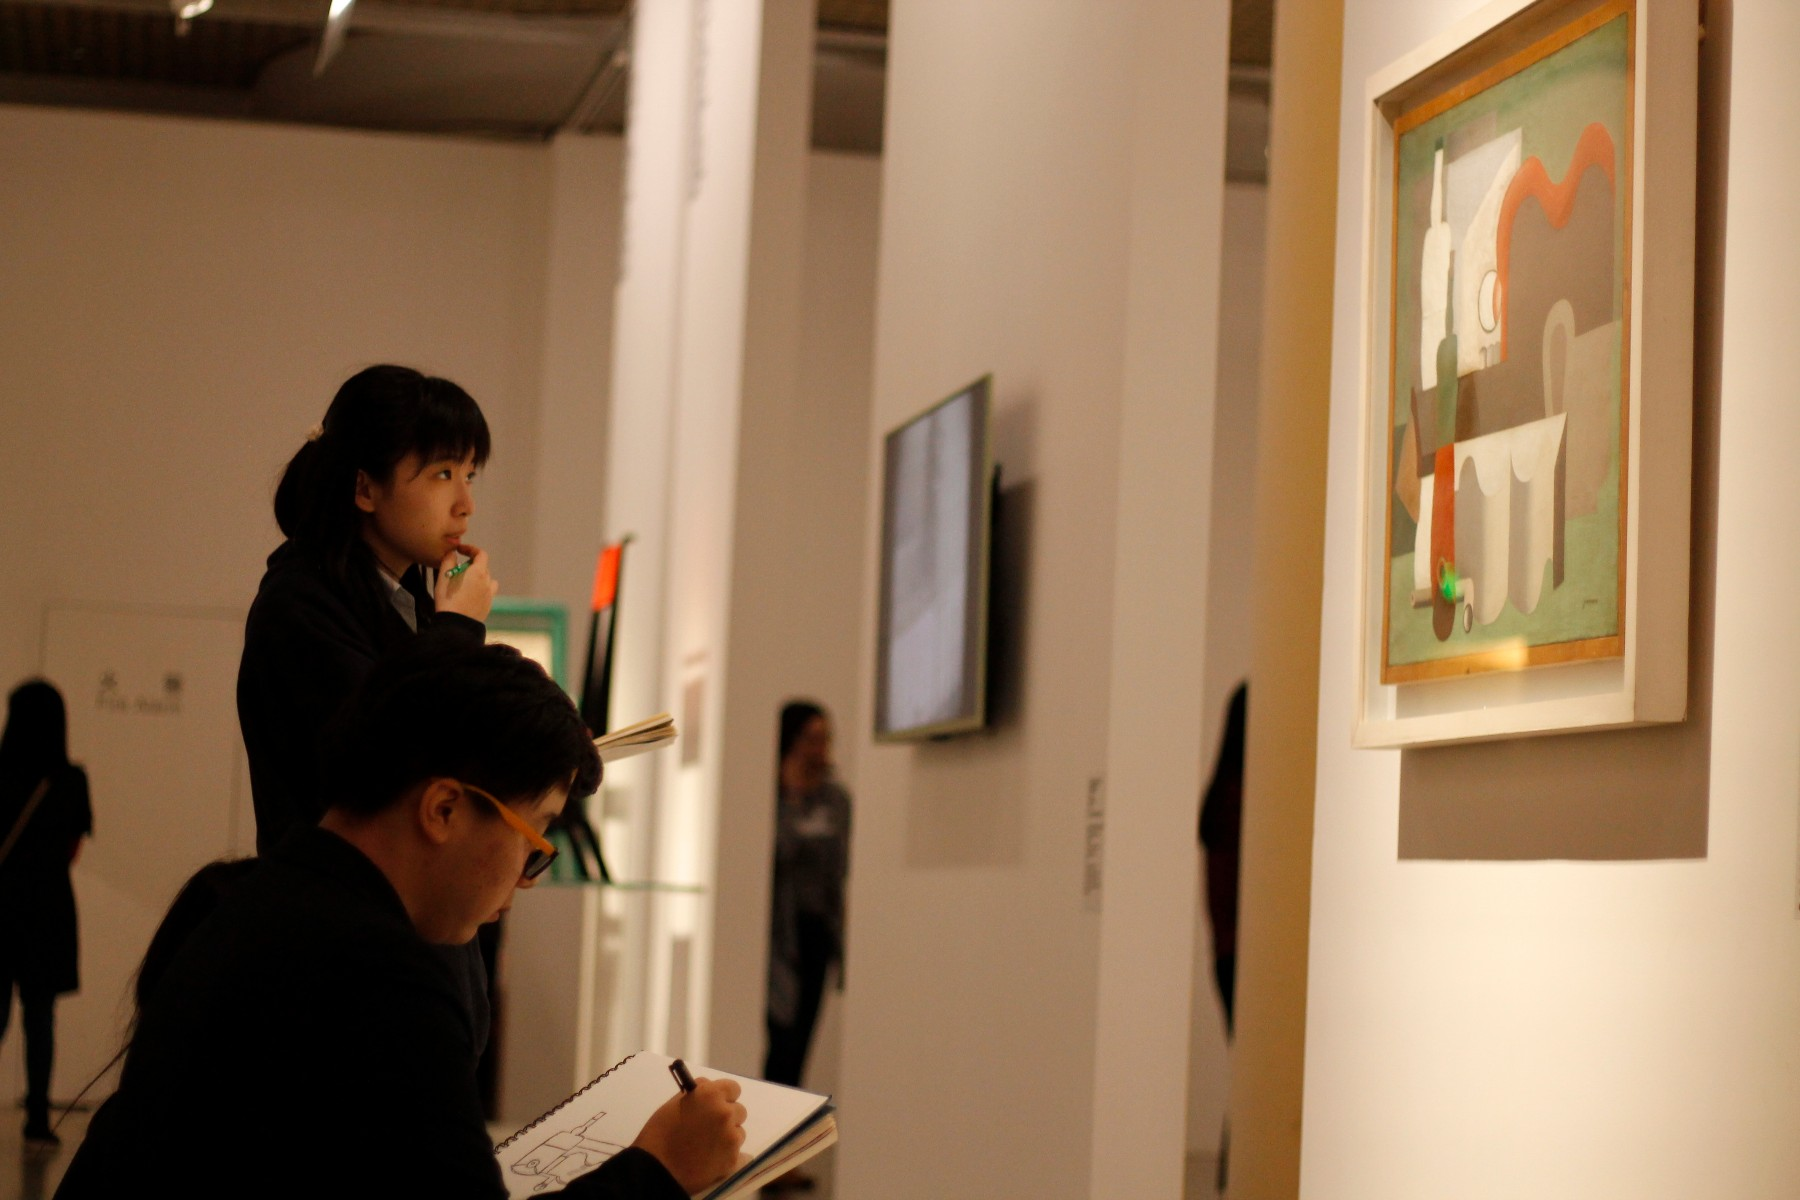 Brief-1--Students-sketching-in-the-museum-8a34a8.jpg